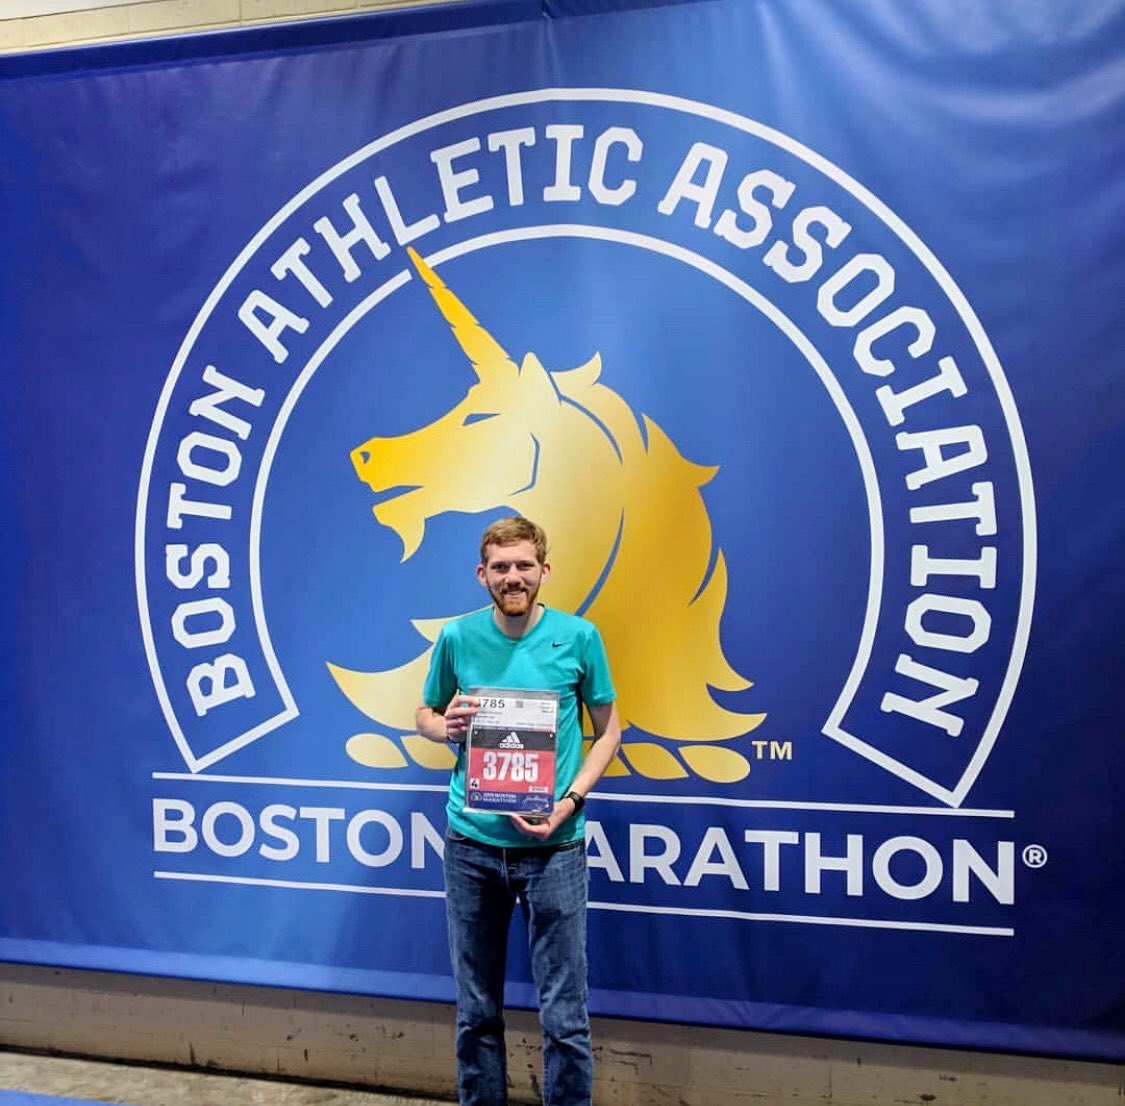 Shoutout to Andrew Charters (Simulation Engineer at @CGRnascar) for crushing the @bostonmarathon today with a time of 2:48:55!   *thats a 6.27 minute mile   #Boston2019 | #MondayMotivation<br>http://pic.twitter.com/GOGbzebMOZ